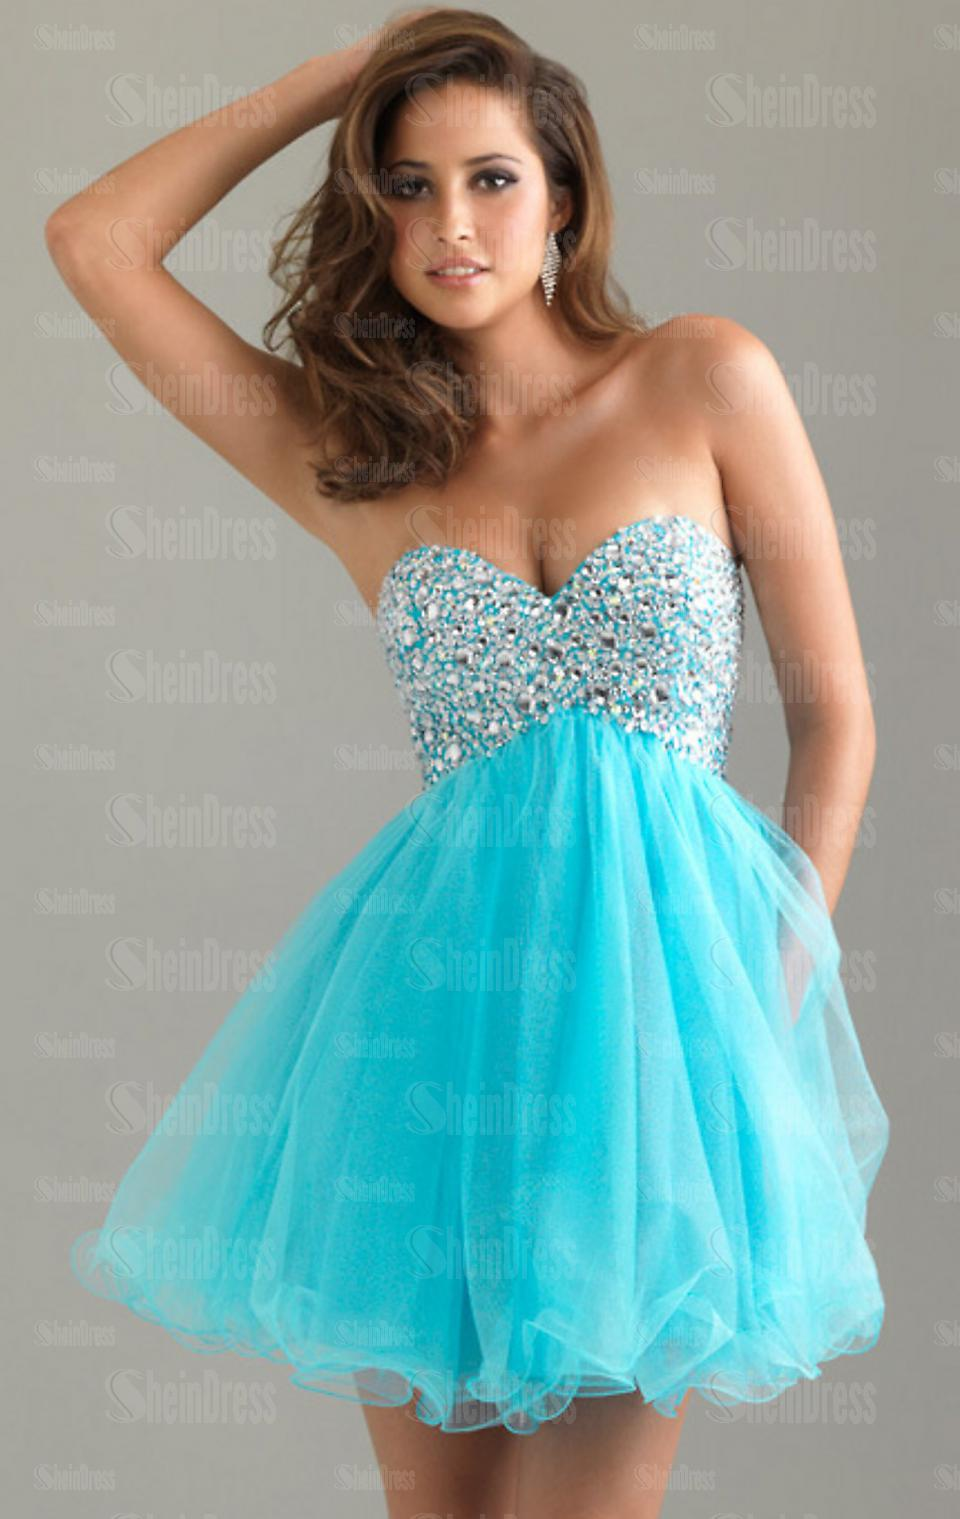 Which Prom Dress Are You Most Likely To Wear? | Playbuzz